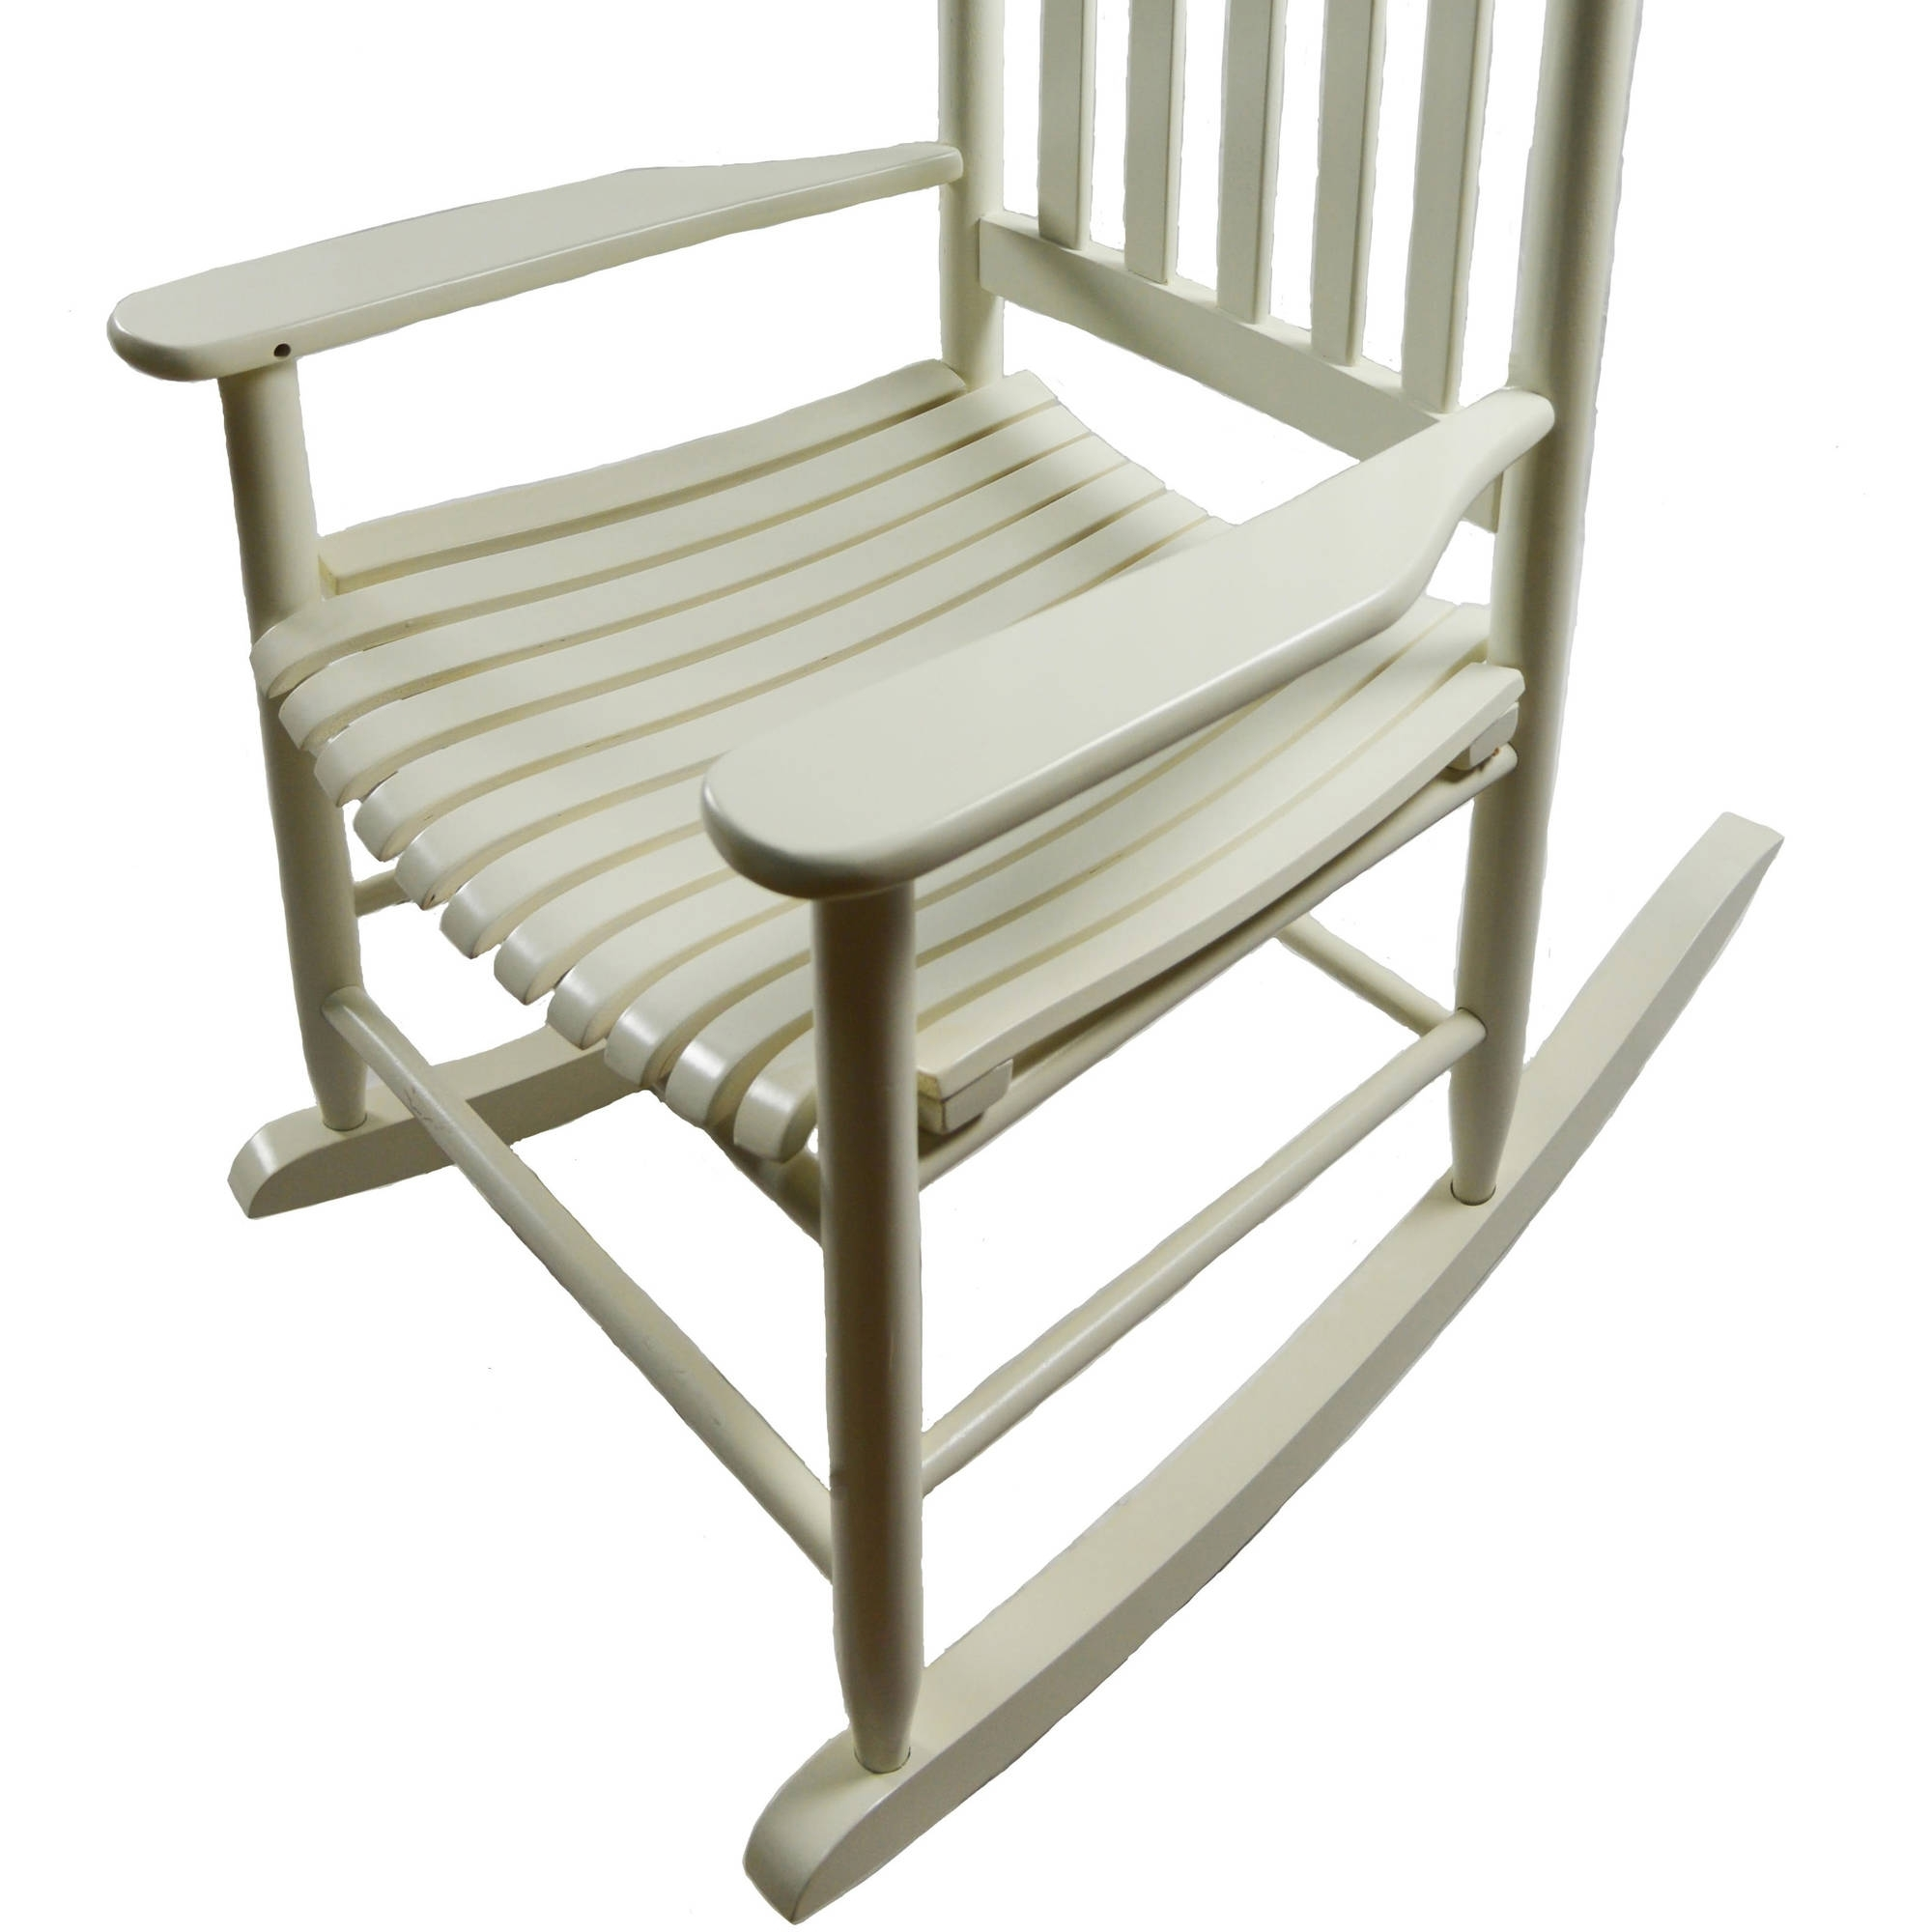 Rocking Chairs At Walmart With Regard To Well Known Mainstays Outdoor Wood Rocking Chair – Walmart (View 12 of 15)